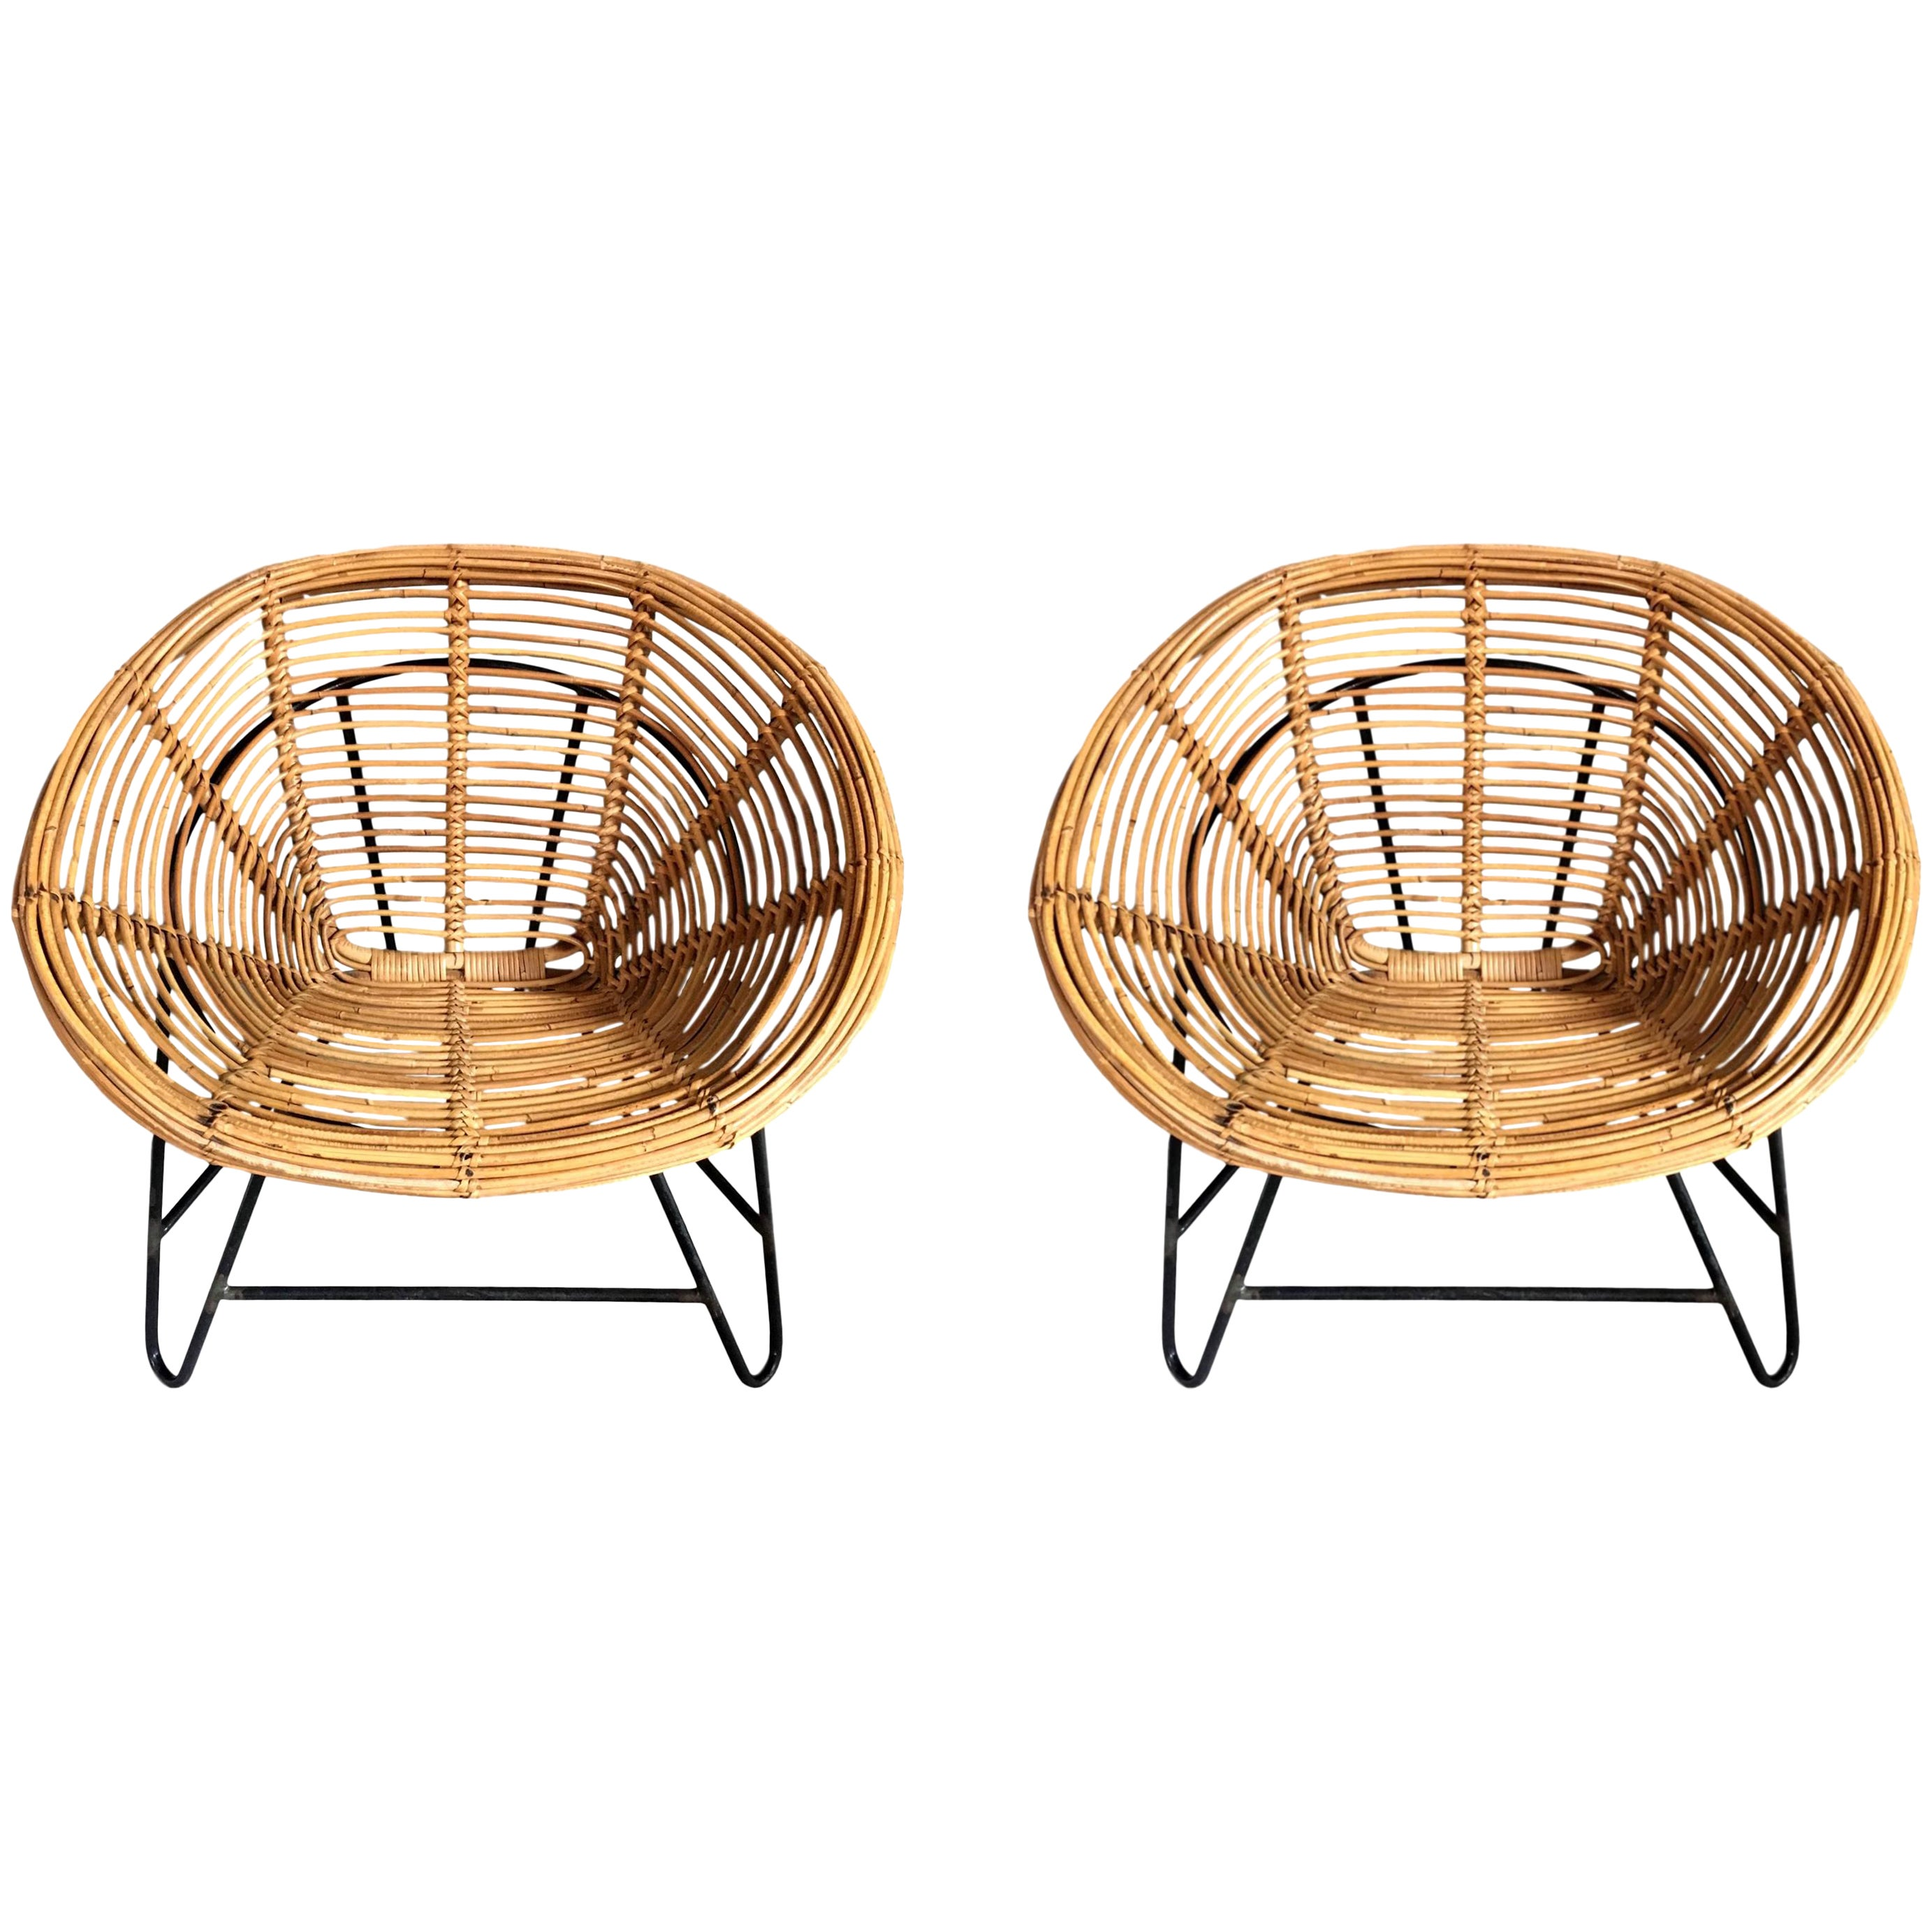 Rattan Chairs Pair Of French Rattan And Iron Chairs